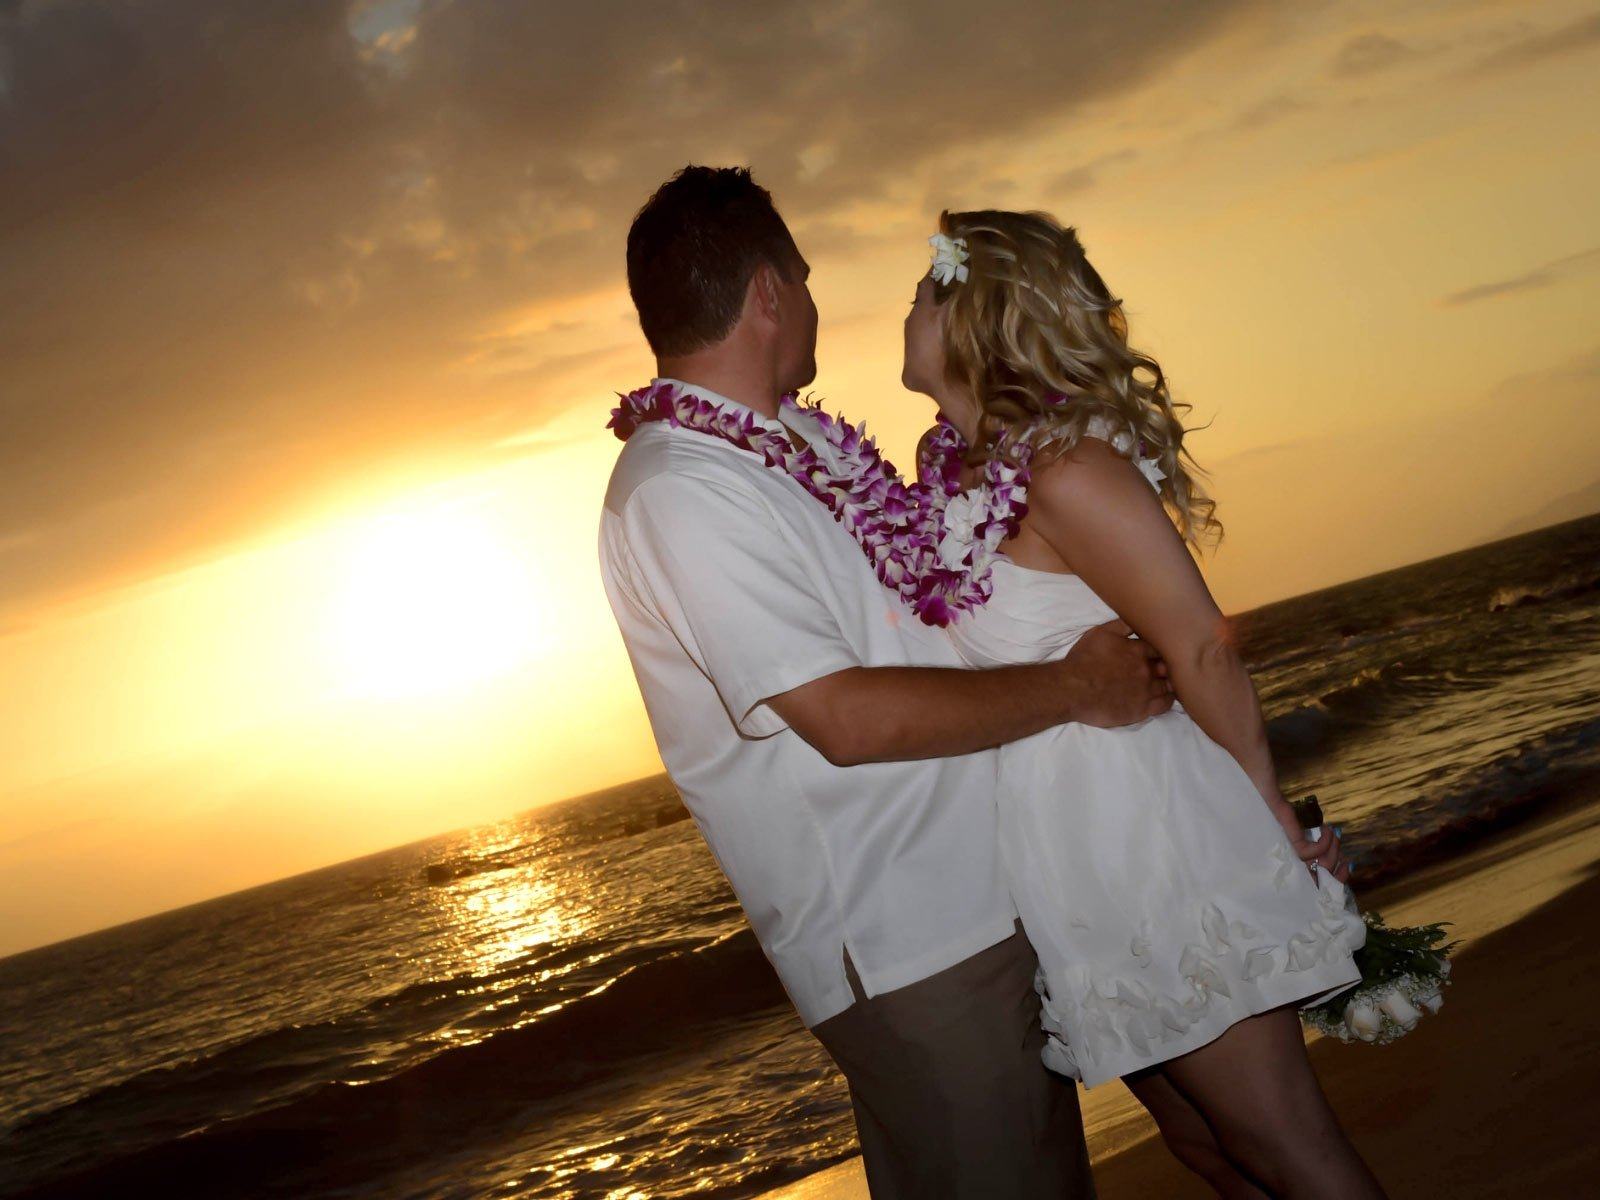 Maui is one of the most romantic places to visit for a honeymoon, romantic celebration or wedding.